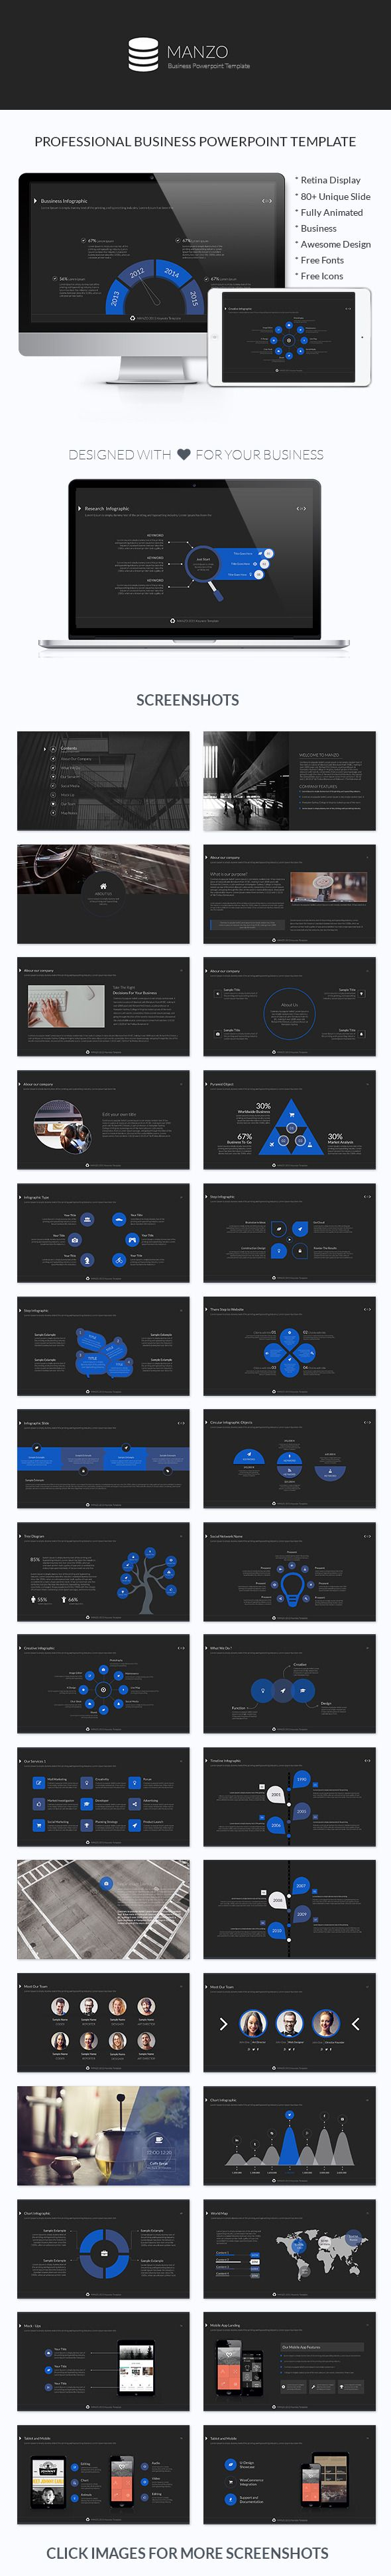 Manzo Business #Powerpoint Professional & Corporate Presentation